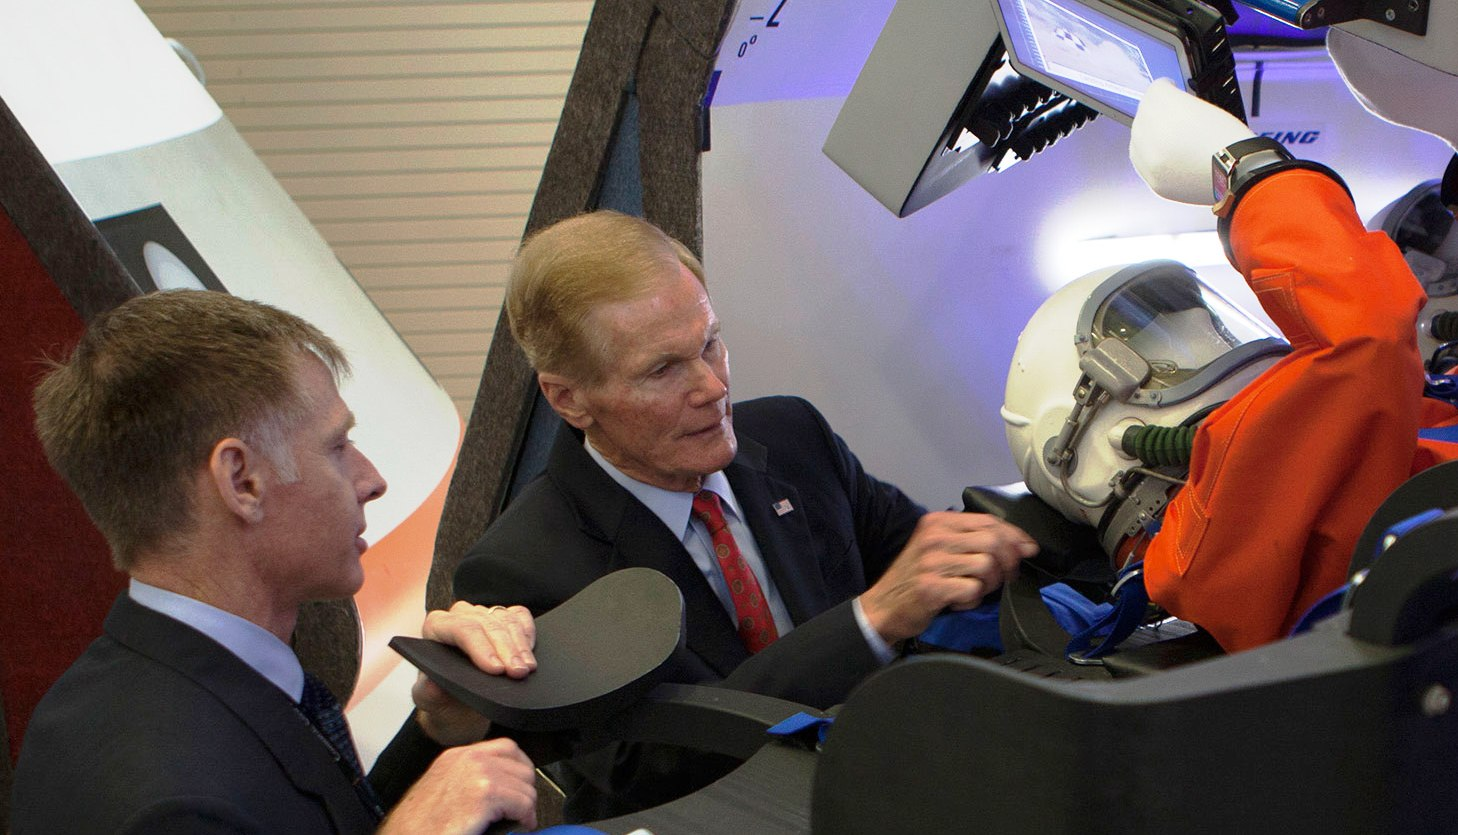 Bill Nelson and Chris Ferguson at Starliner mockup